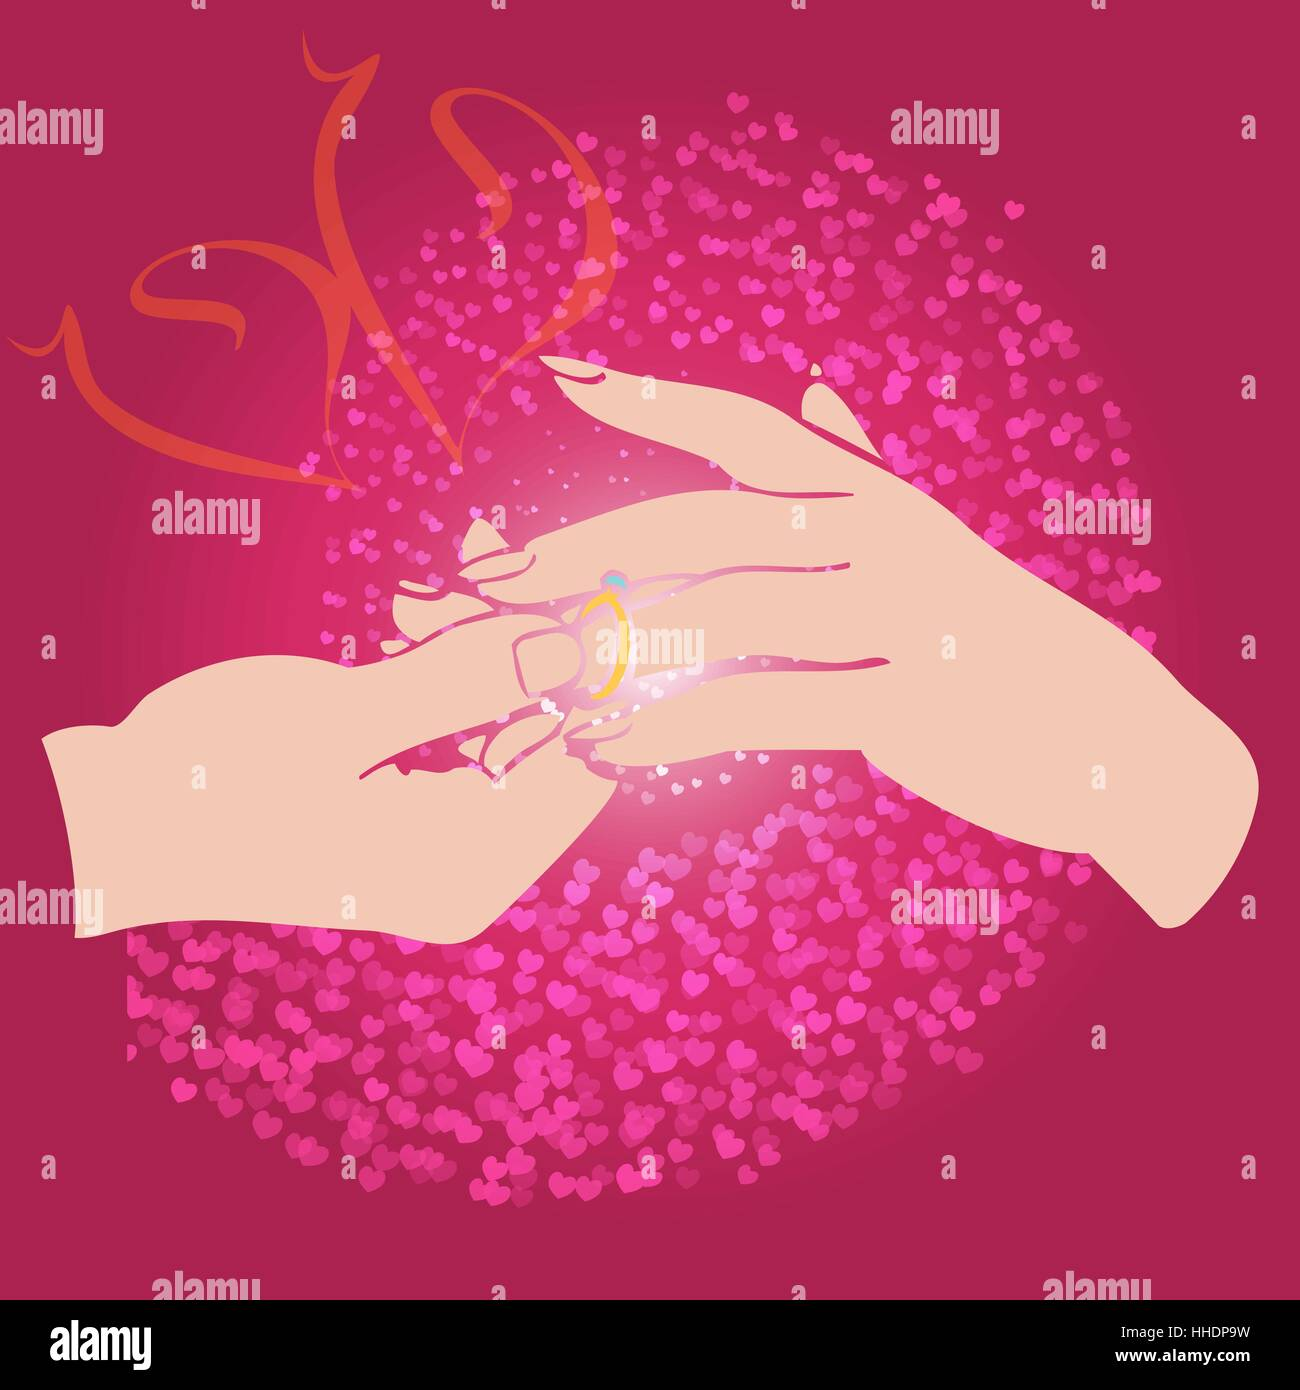 Wedding Ring Finger Stock Vector Images - Alamy